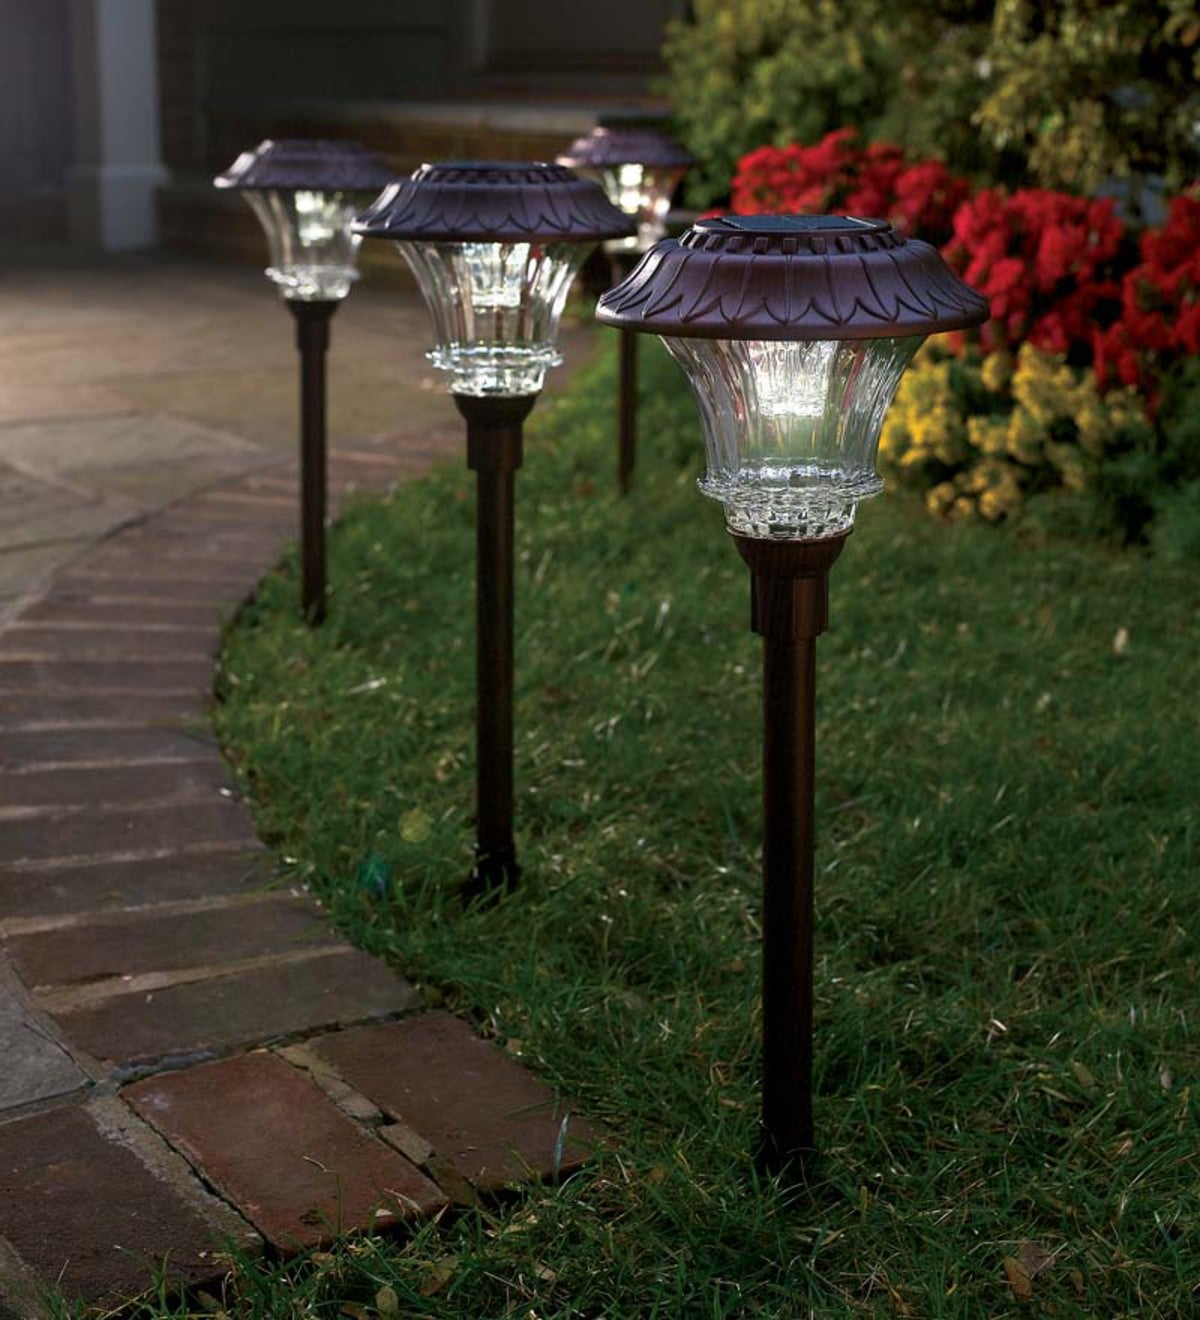 NEW! SET OF 6 DAISY STYLE SOLAR POWERED OUTDOOR GARDEN WALKWAY PATH LED LIGHTS